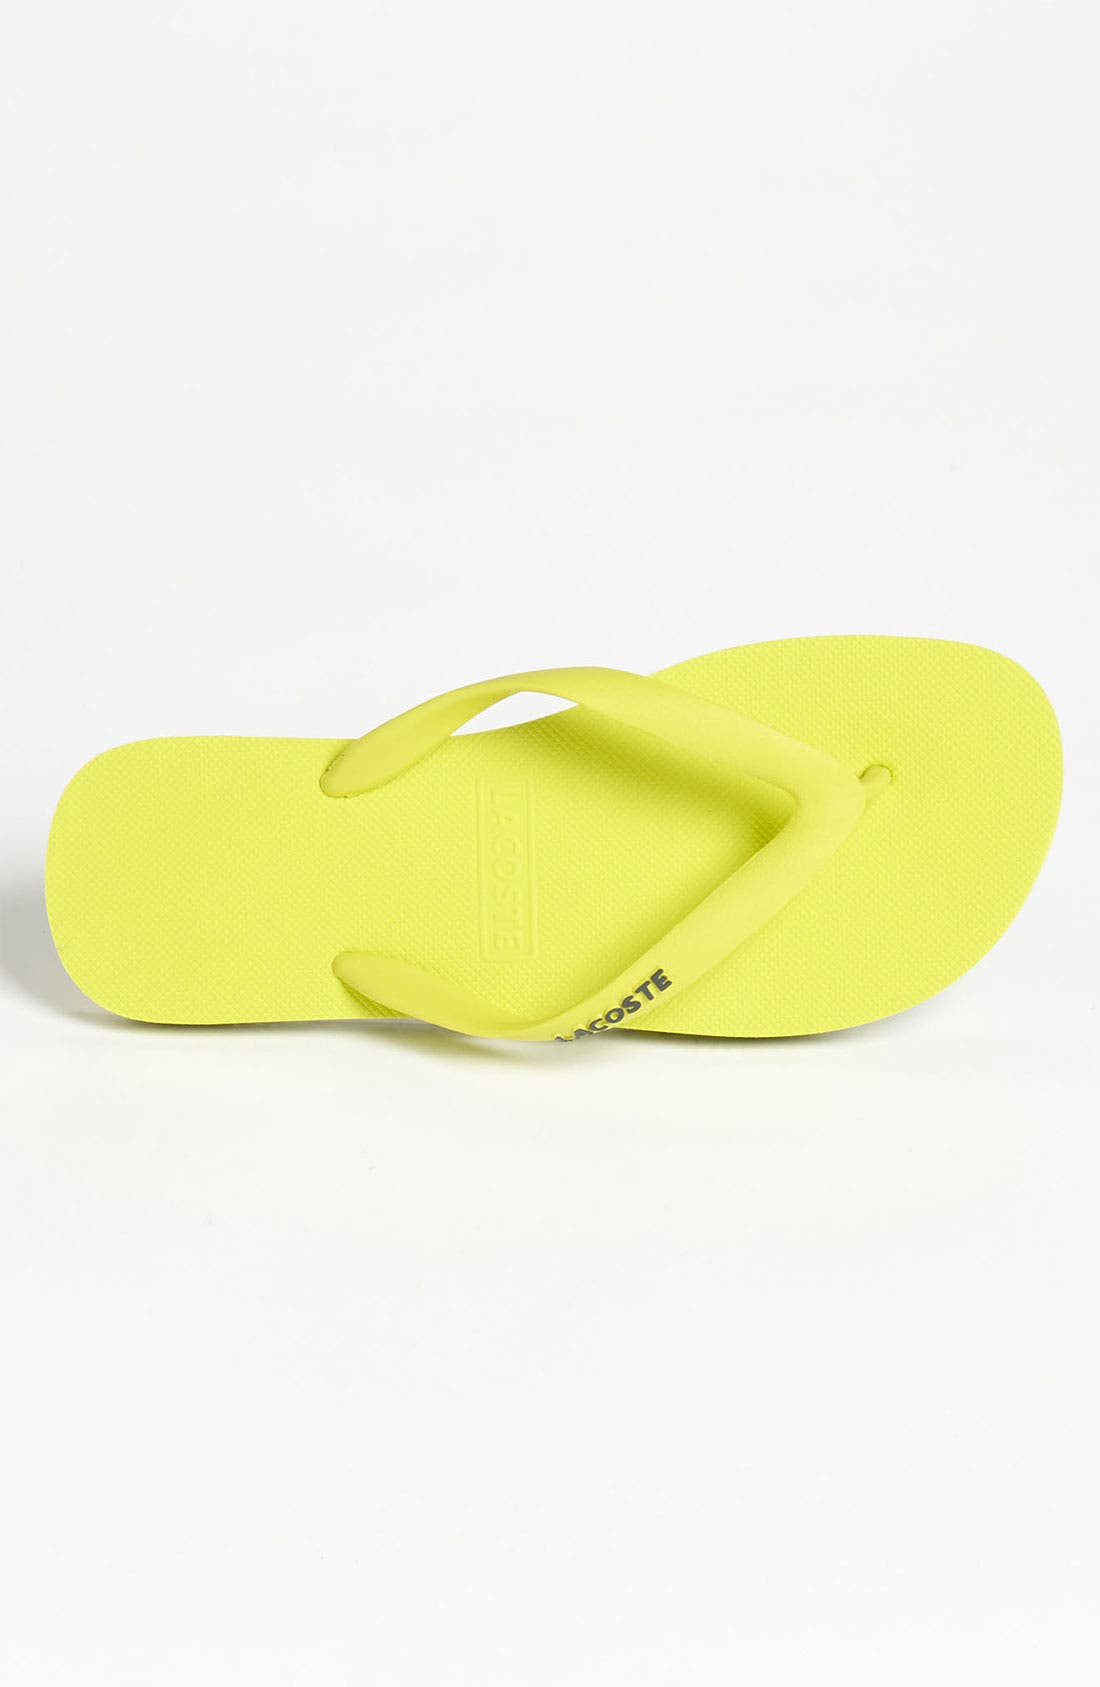 Alternate Image 3  - Lacoste 'Nosara Jaw' Flip Flop (Men)